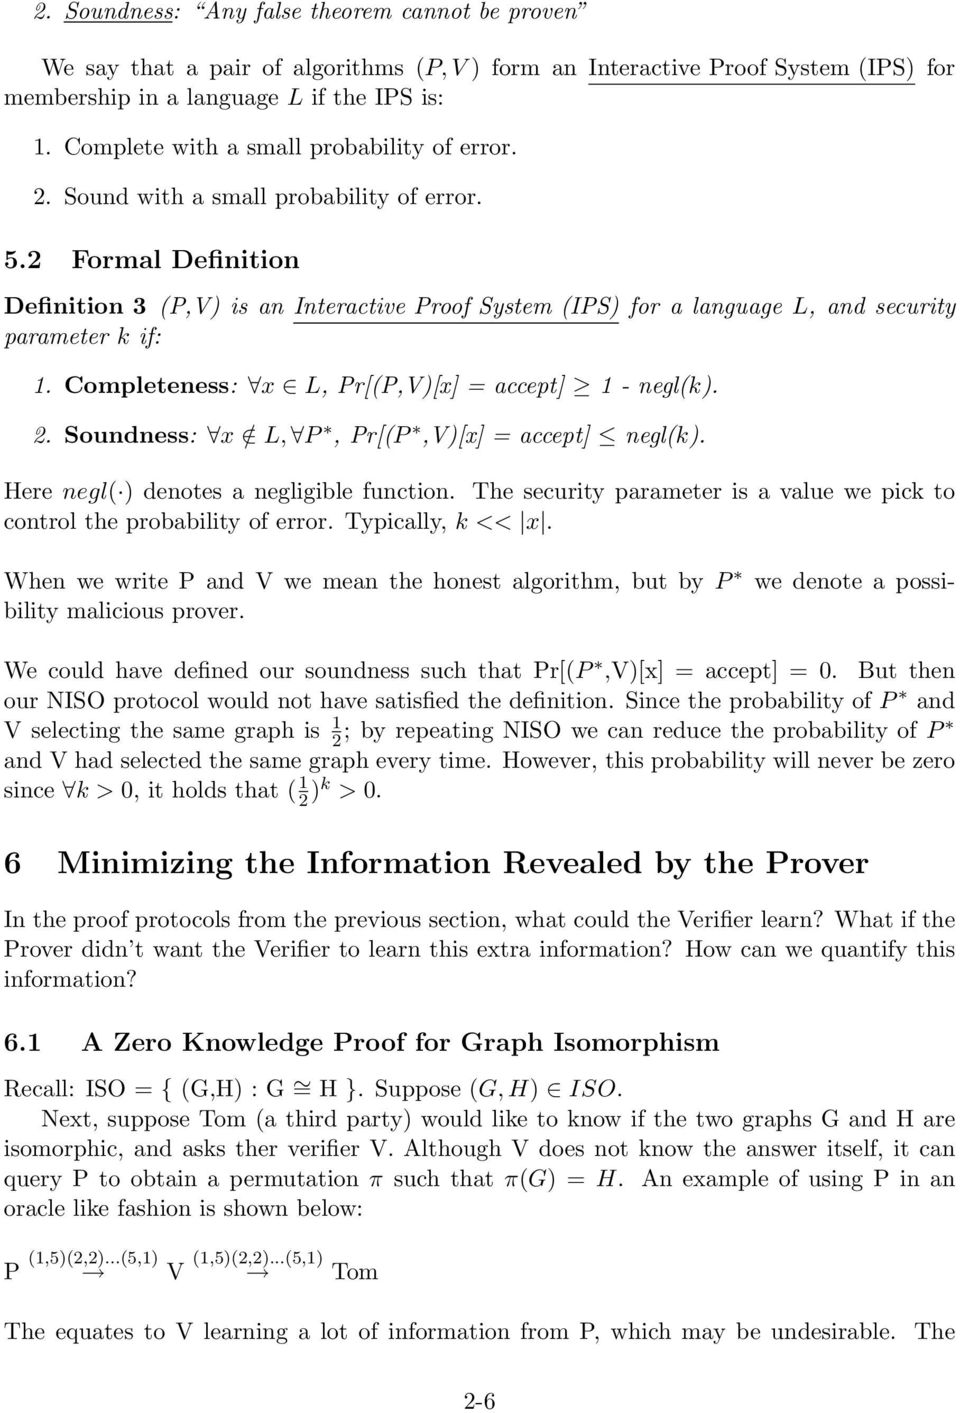 2 Formal Definition Definition 3 (P,V) is an Interactive Proof System (IPS) for a language L, and security parameter k if: 1. Completeness: x L, Pr[(P,V)[x] = accept] 1 - negl(k). 2.